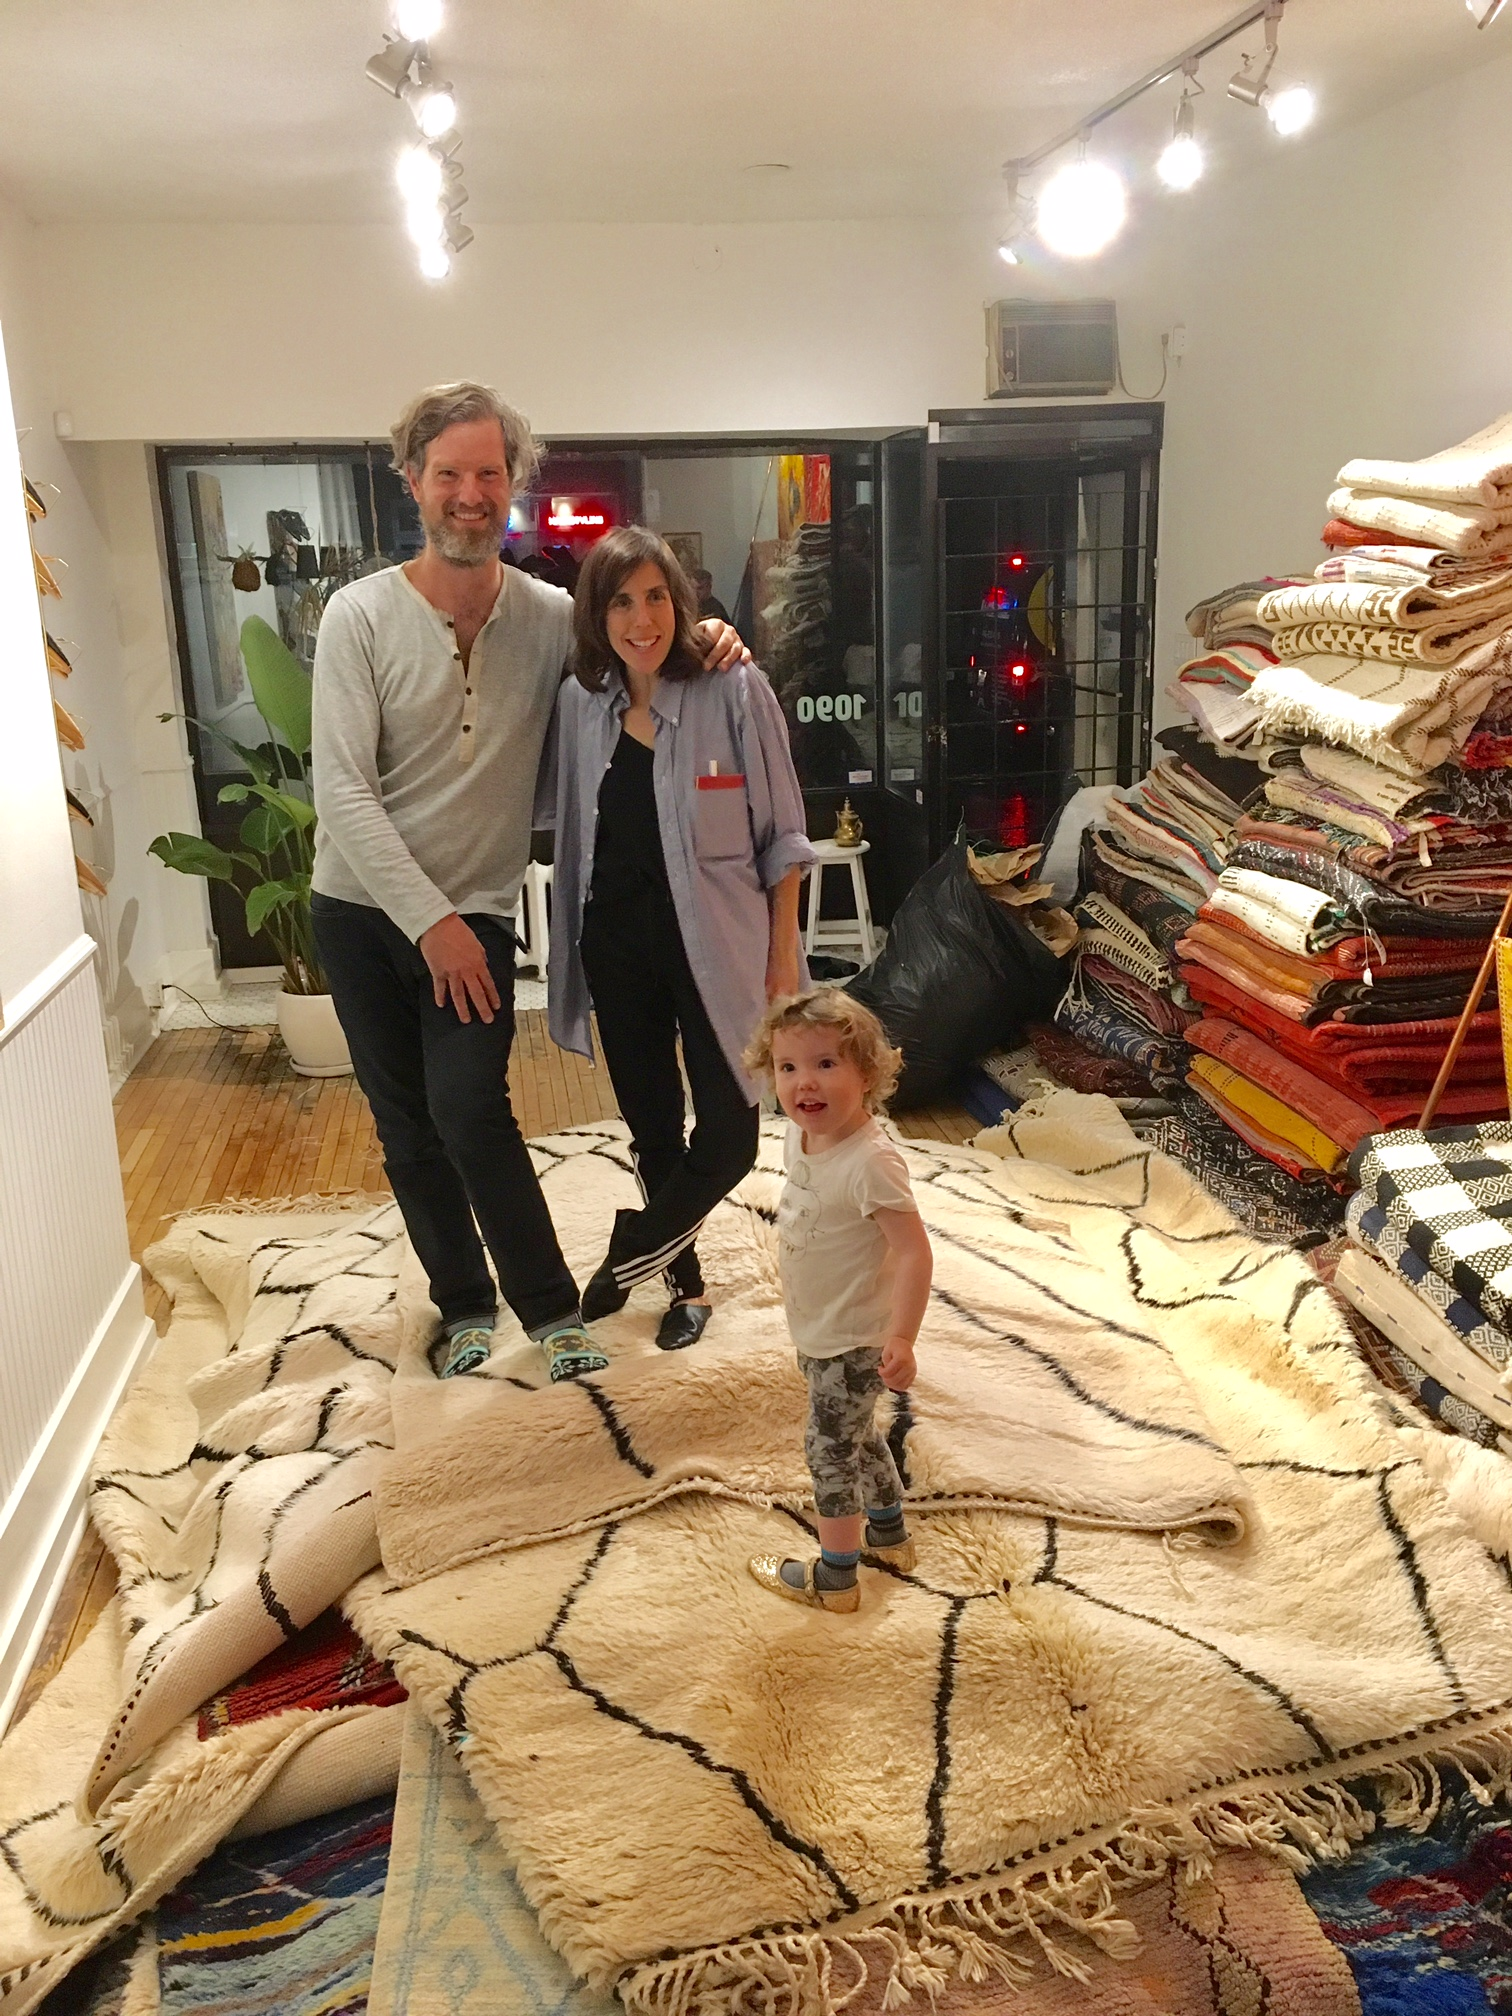 John, Miriam & Zelda on top of the freshly unpacked rugs. Contemporary Beni M'rirt rugs on top.